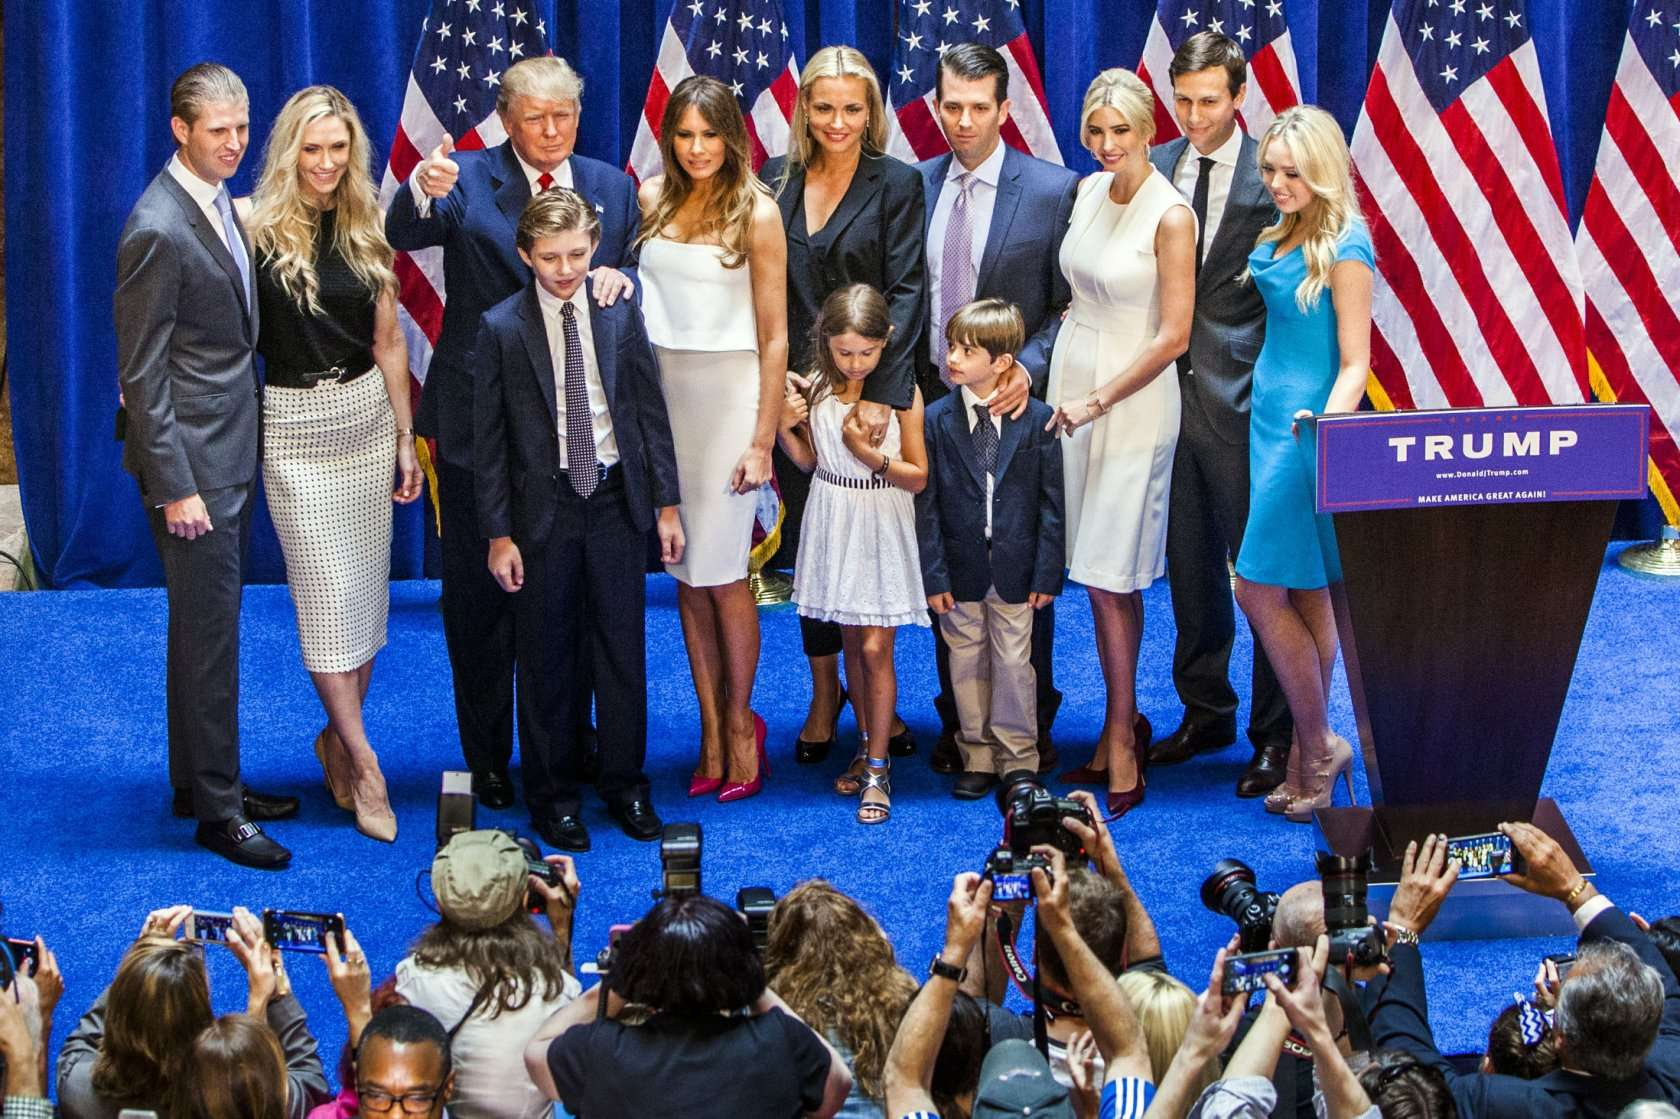 NEW YORK, NY - JUNE 16:   (L-R) Eric Trump, Lara Yunaska Trump, Donald Trump, Barron Trump, Melania Trump, Vanessa Haydon Trump, Kai Madison Trump, Donald Trump Jr., Donald John Trump III, Ivanka Trump, Jared Kushner, and Tiffany Trump pose for photos on stage after Donald Trump announced his candidacy for the U.S. presidency at Trump Tower on June 16, 2015 in New York City. Trump is the 12th Republican who has announced running for the White House.  (Photo by Christopher Gregory/Getty Images)